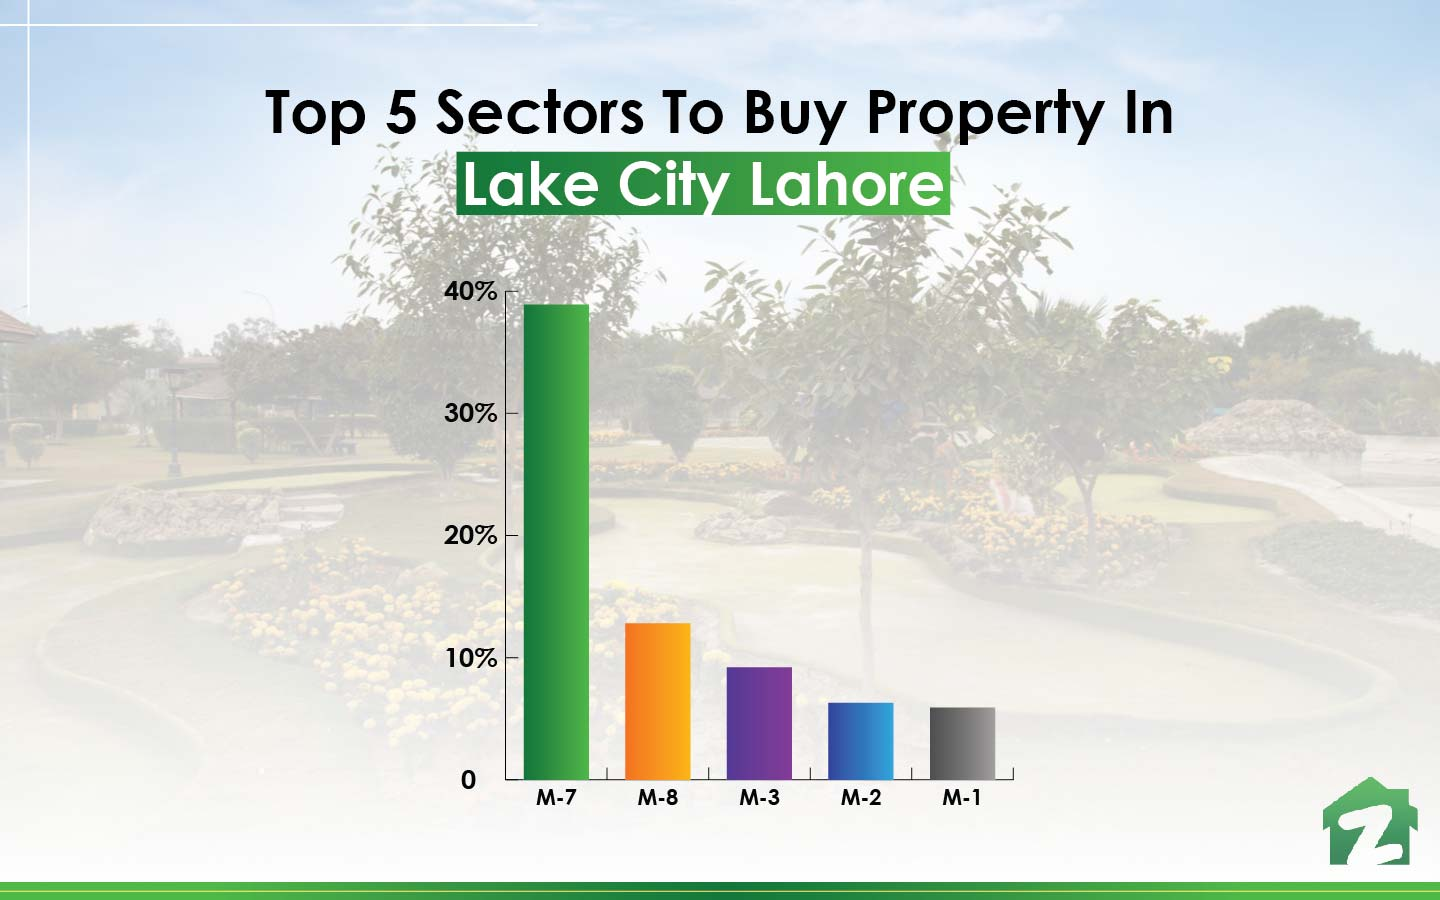 famous sectors to buy property in Lake City Lahore